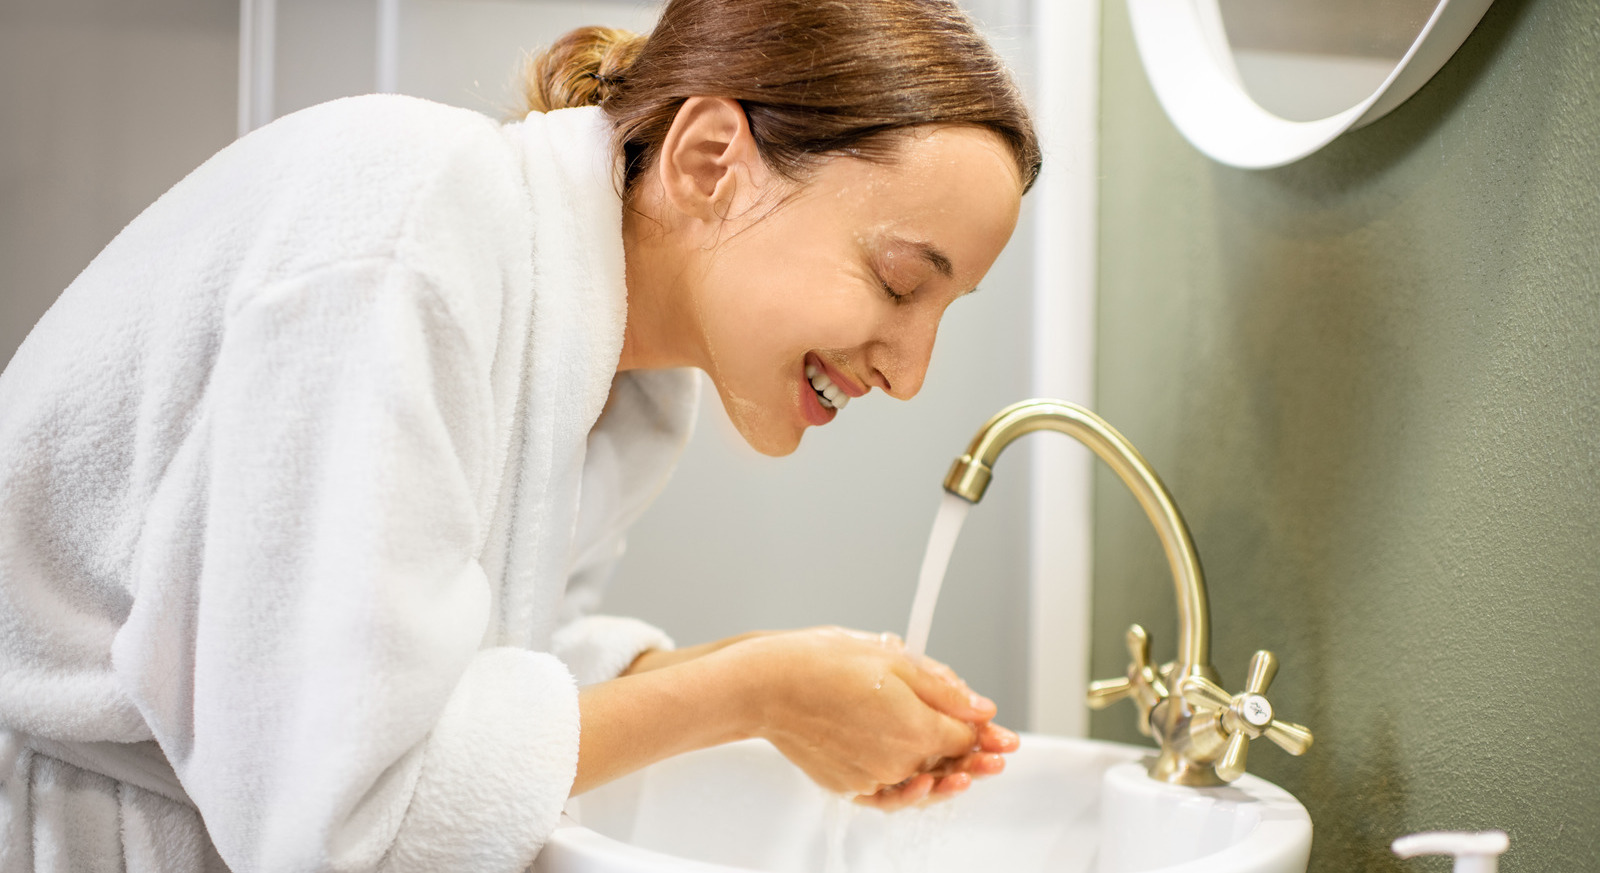 How to control oily skin_the best tips & ingredients to get rid of shine